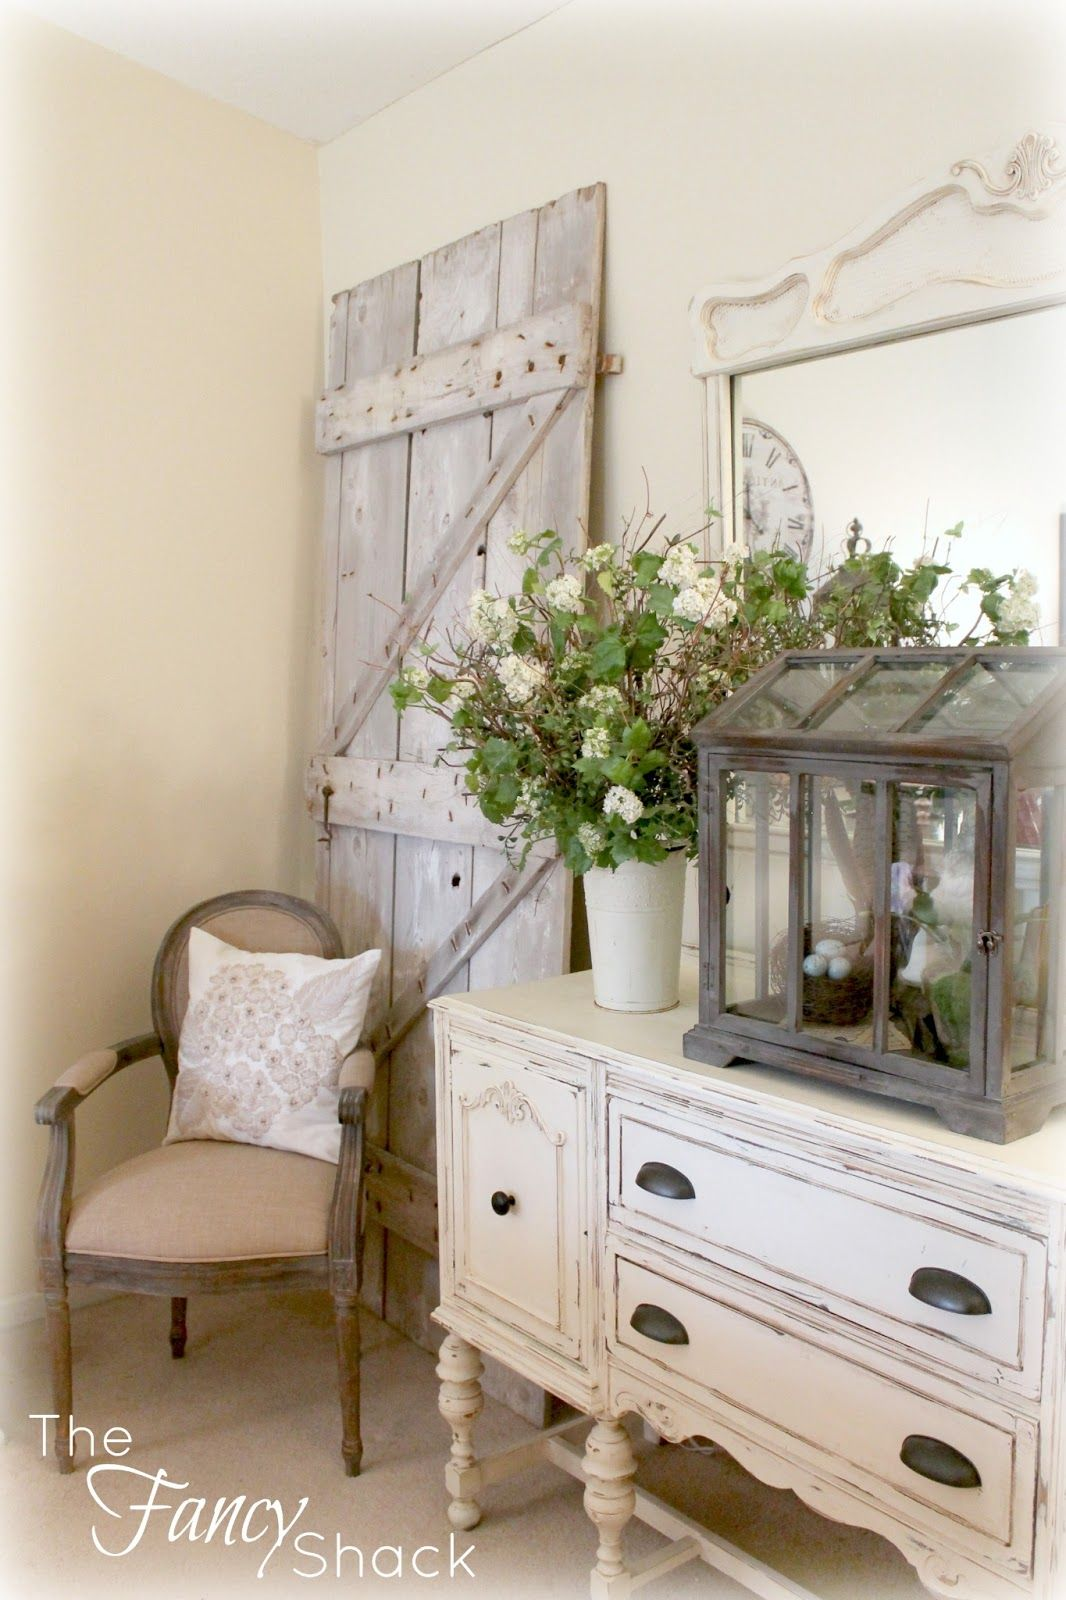 52 ways incorporate shabby chic style into every room in. Black Bedroom Furniture Sets. Home Design Ideas